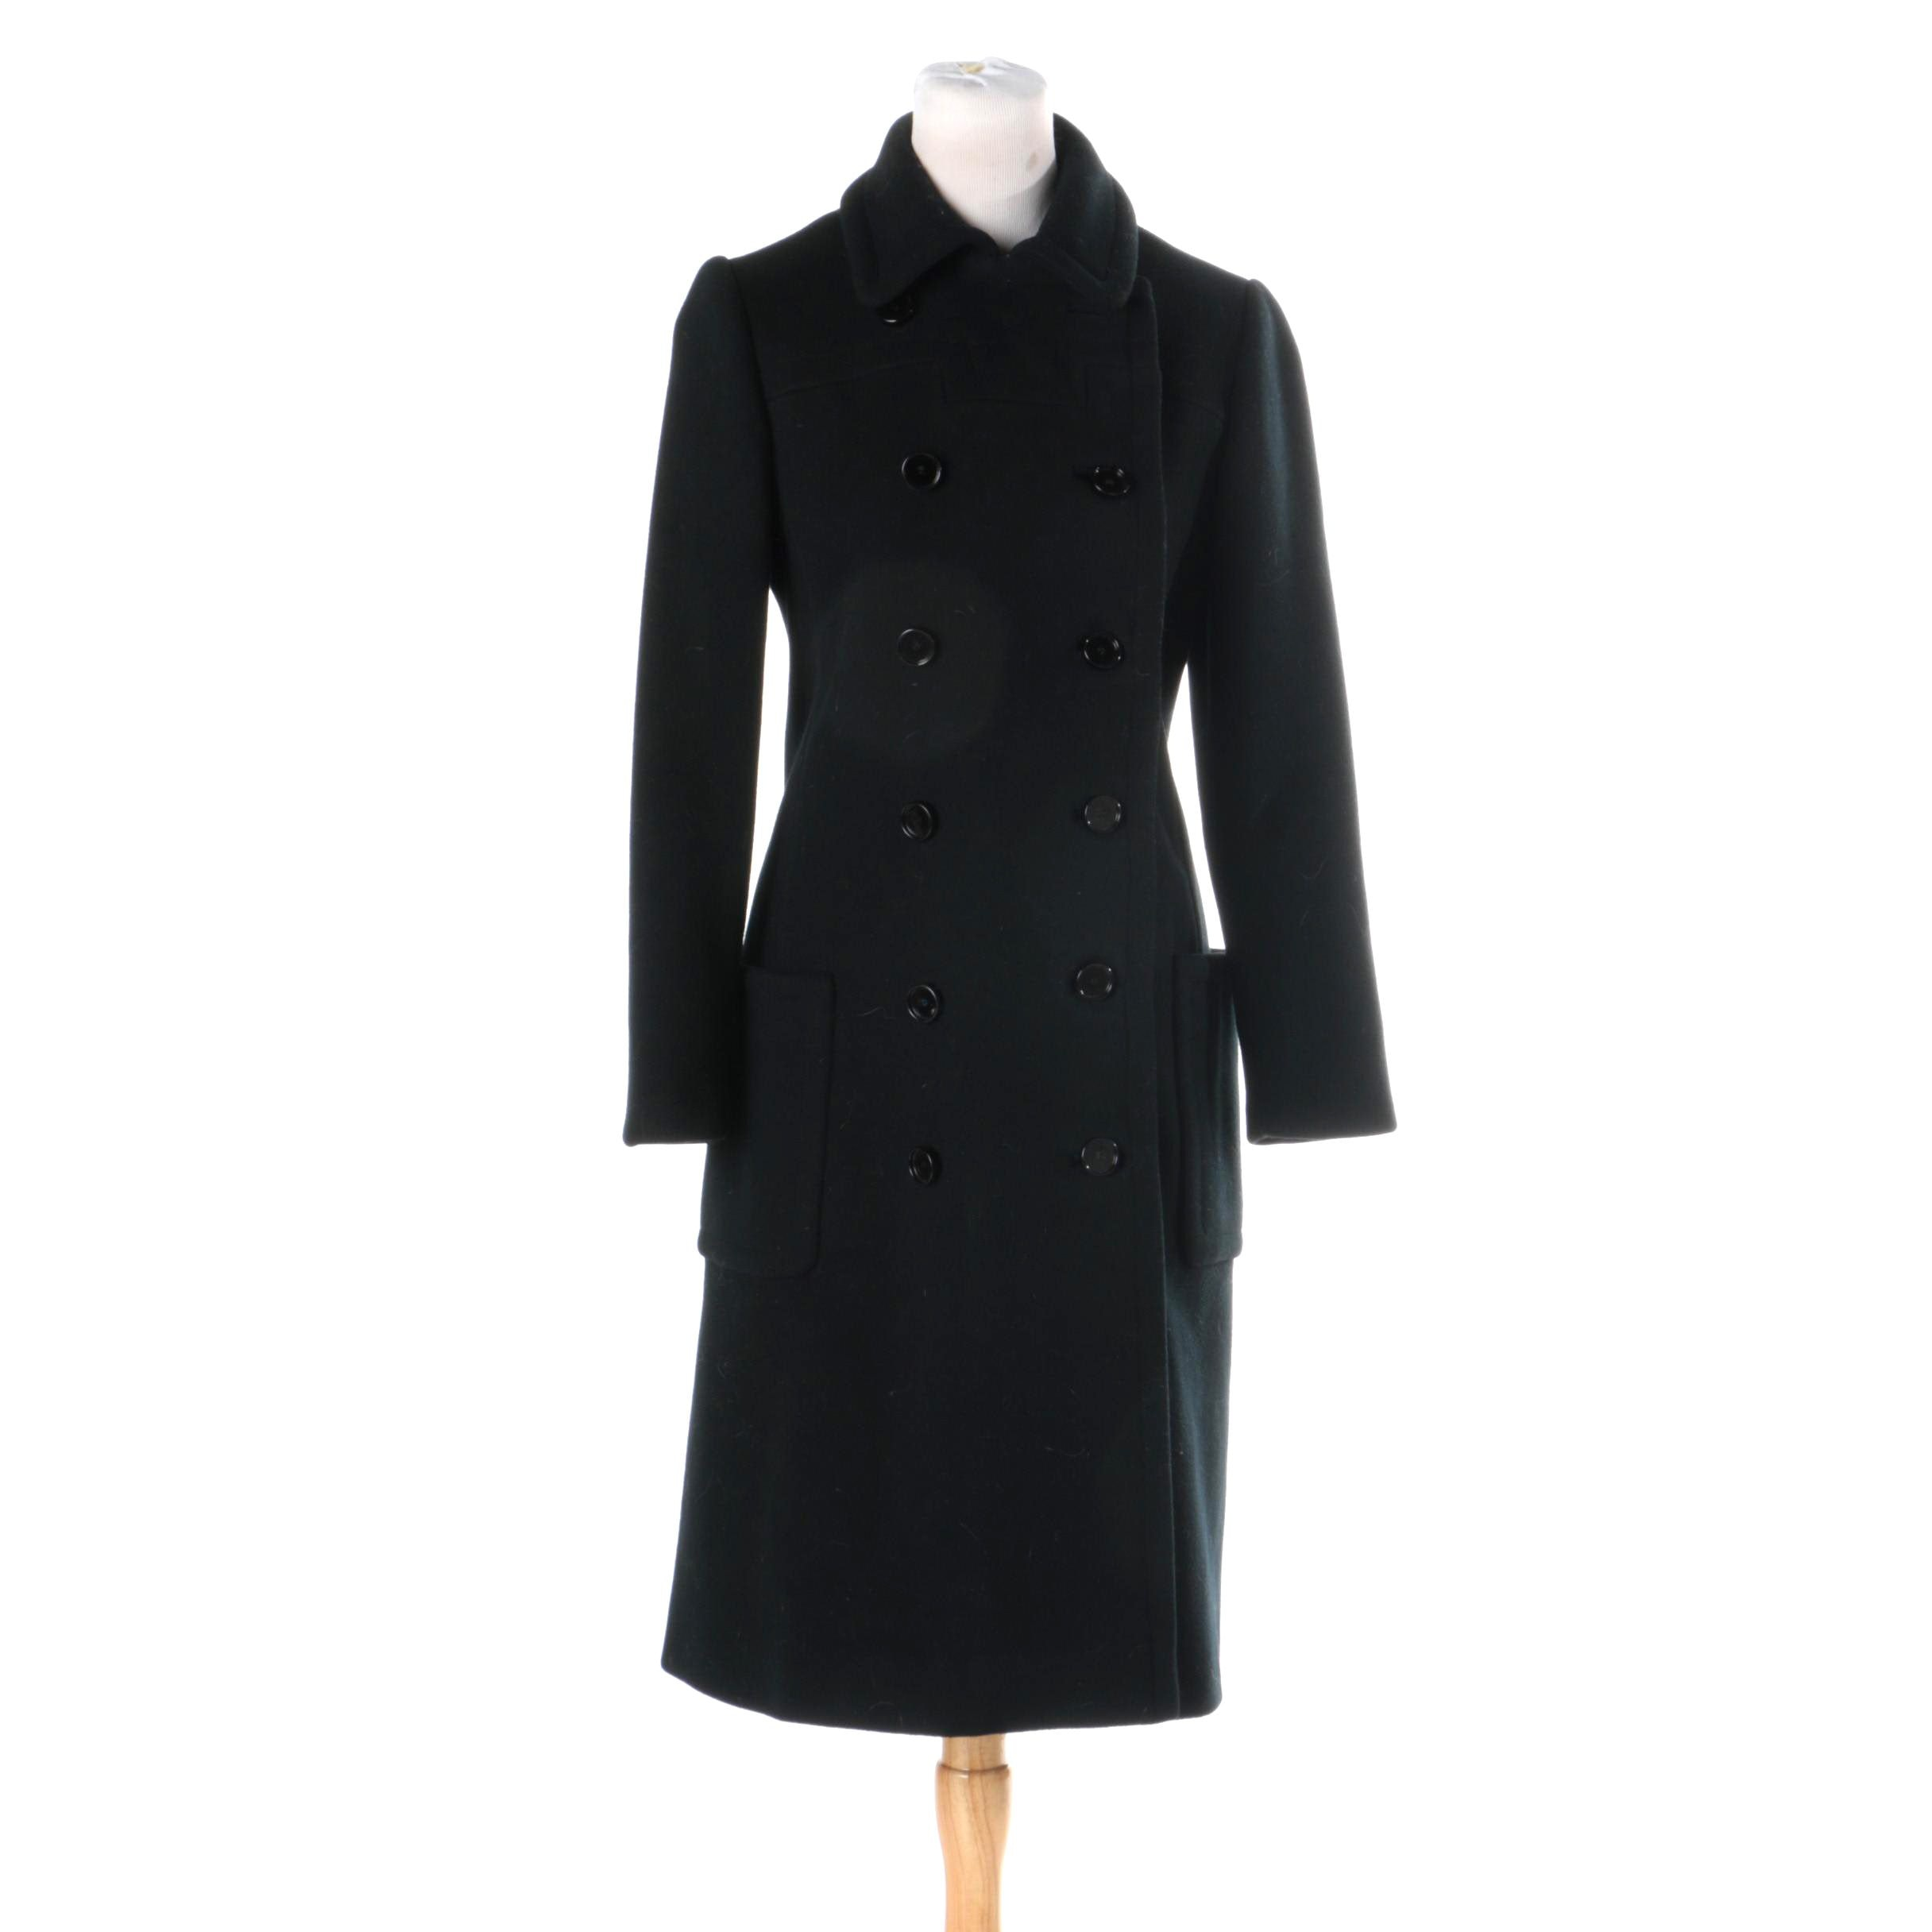 Women's Vintage Harzfeld's Double-Breasted Coat